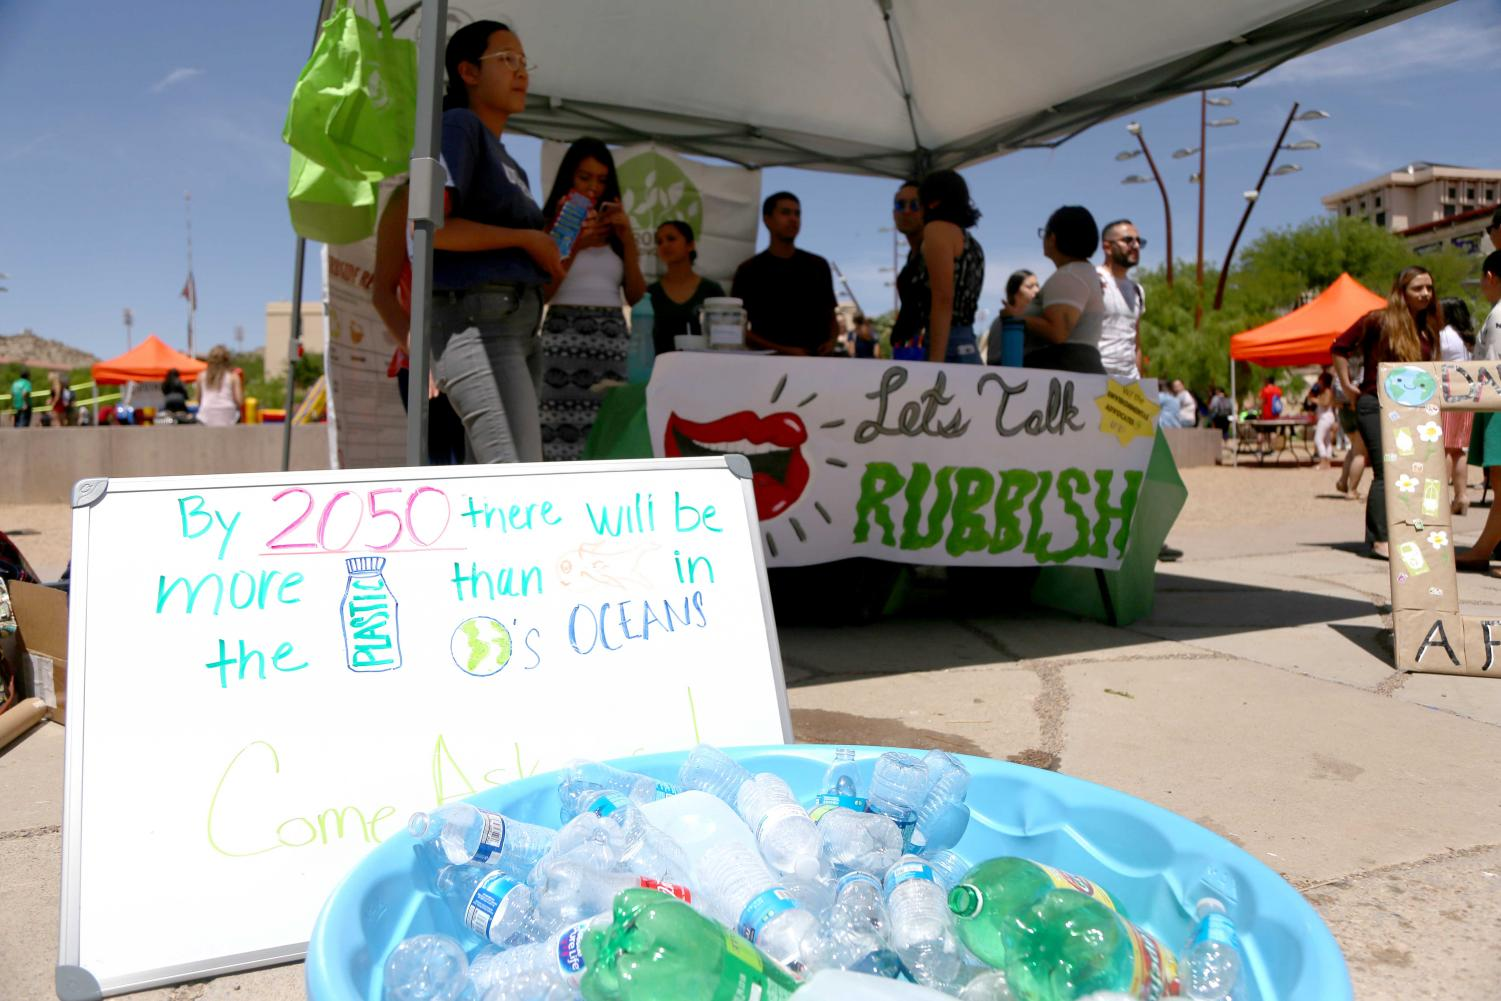 Information+about+recycling+was+given+at+one+of+the+booths+at+the+first+Miner+Fest+on+Wednesday%2C+April+18+at+Centennial+Plaza.+